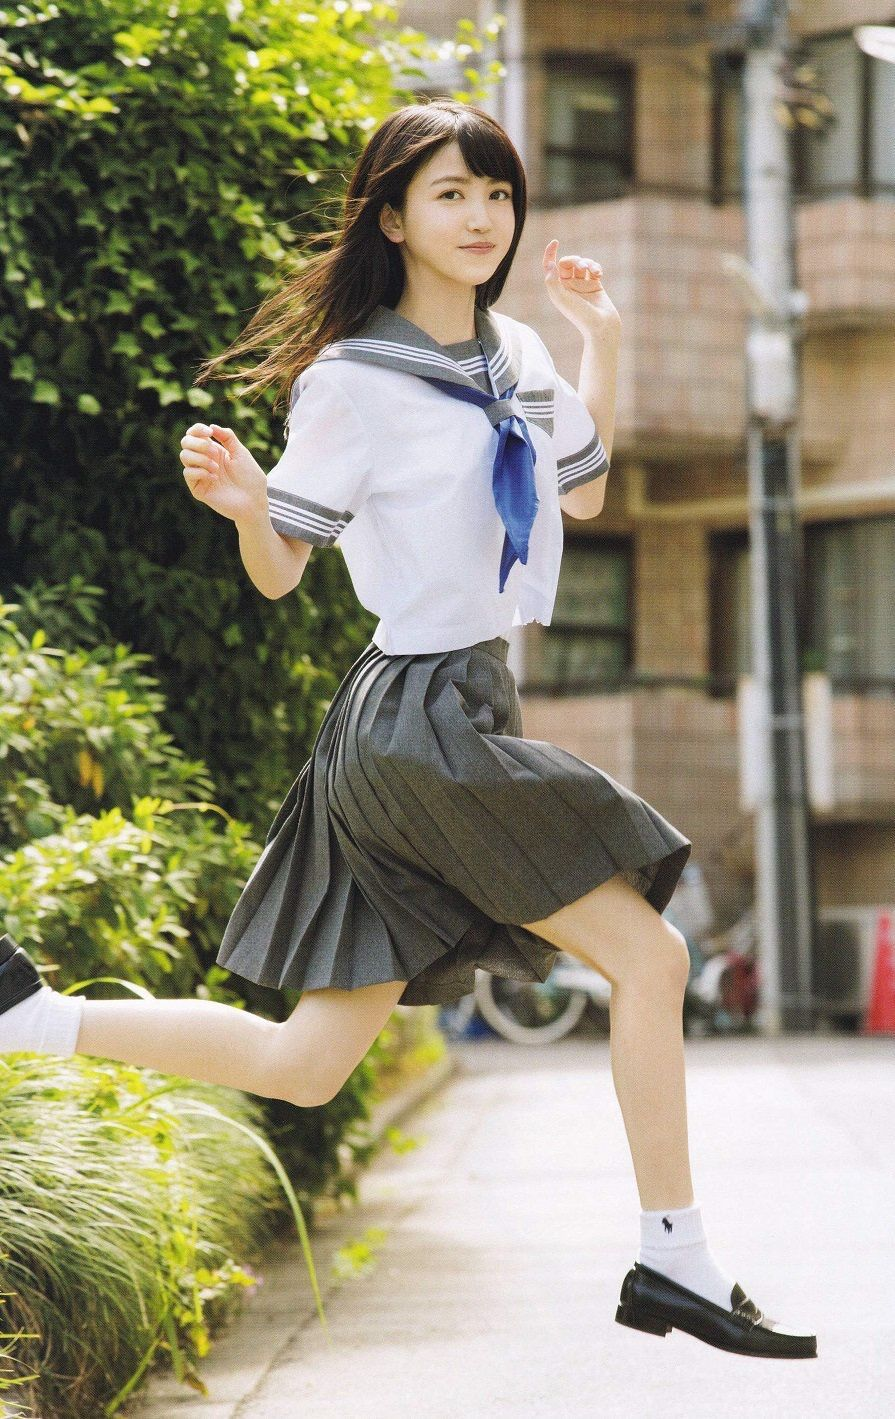 Japanese School Girl Stock Photos, Pictures & Royalty-Free